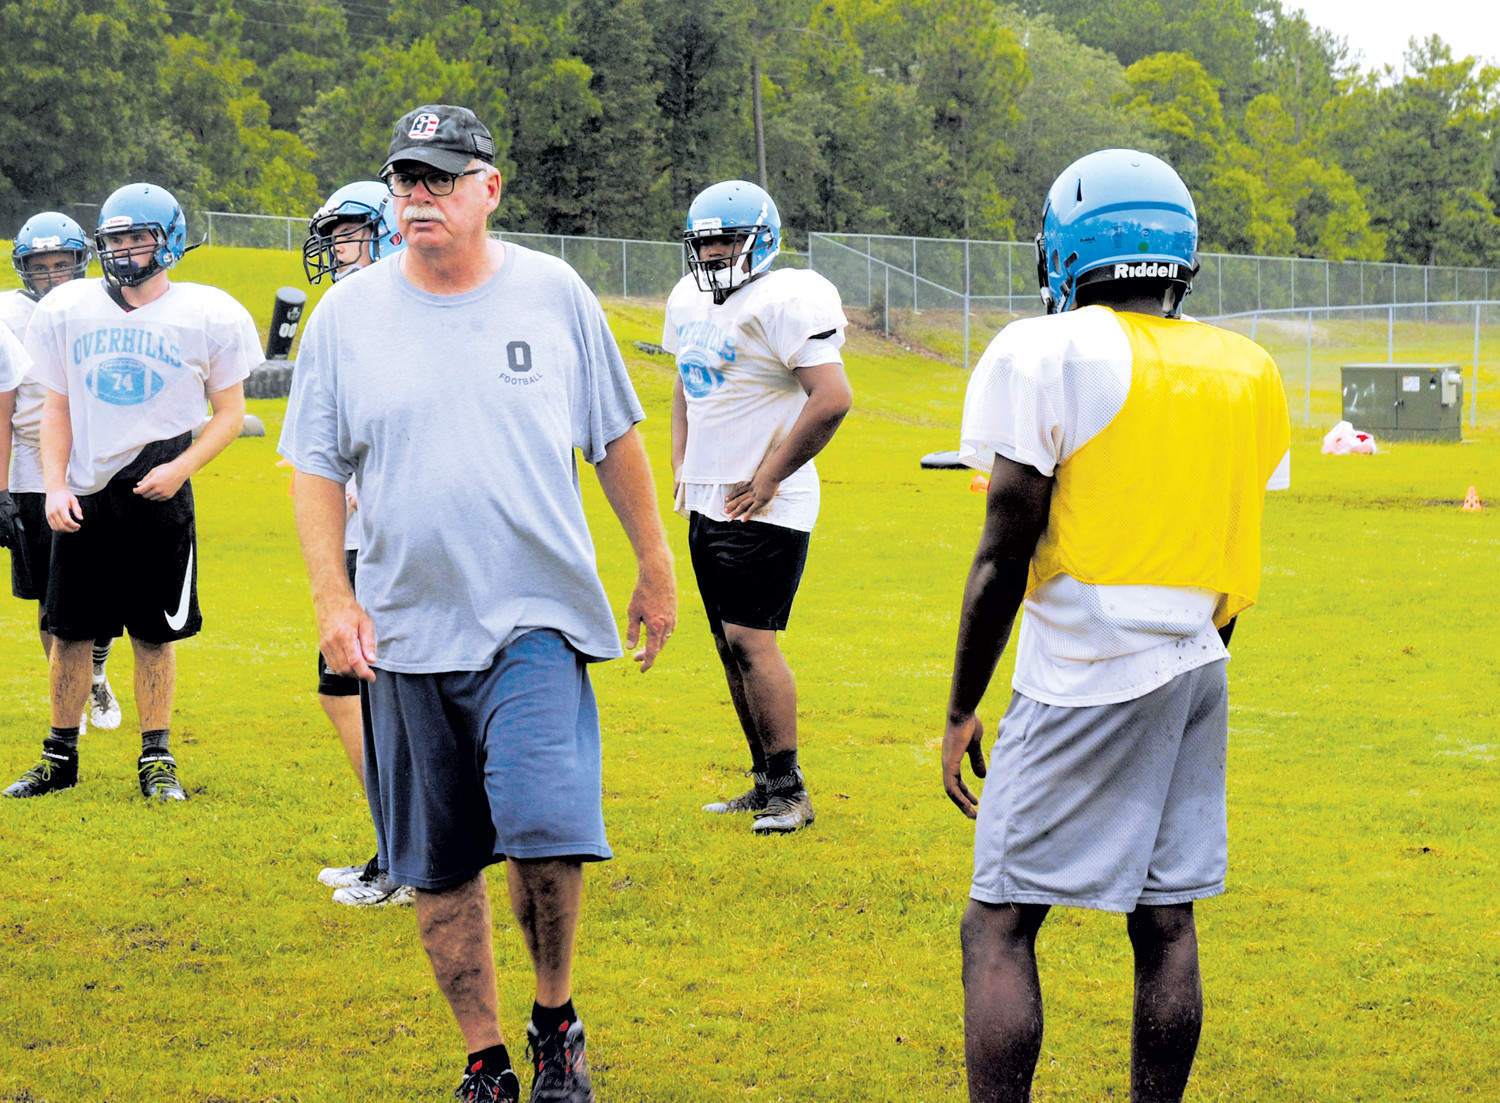 Overhills Jaguars head varsity football coach Mark Kirk surveys his players during an early-August practice in Cameron. His team's roster may not be as deep as last season, but the 3A/4A Jaguars team will put Harnett Central to the test, with their ability to spell and substitute role players between series. Overhills plays at Harnett Central at 7 tonight.